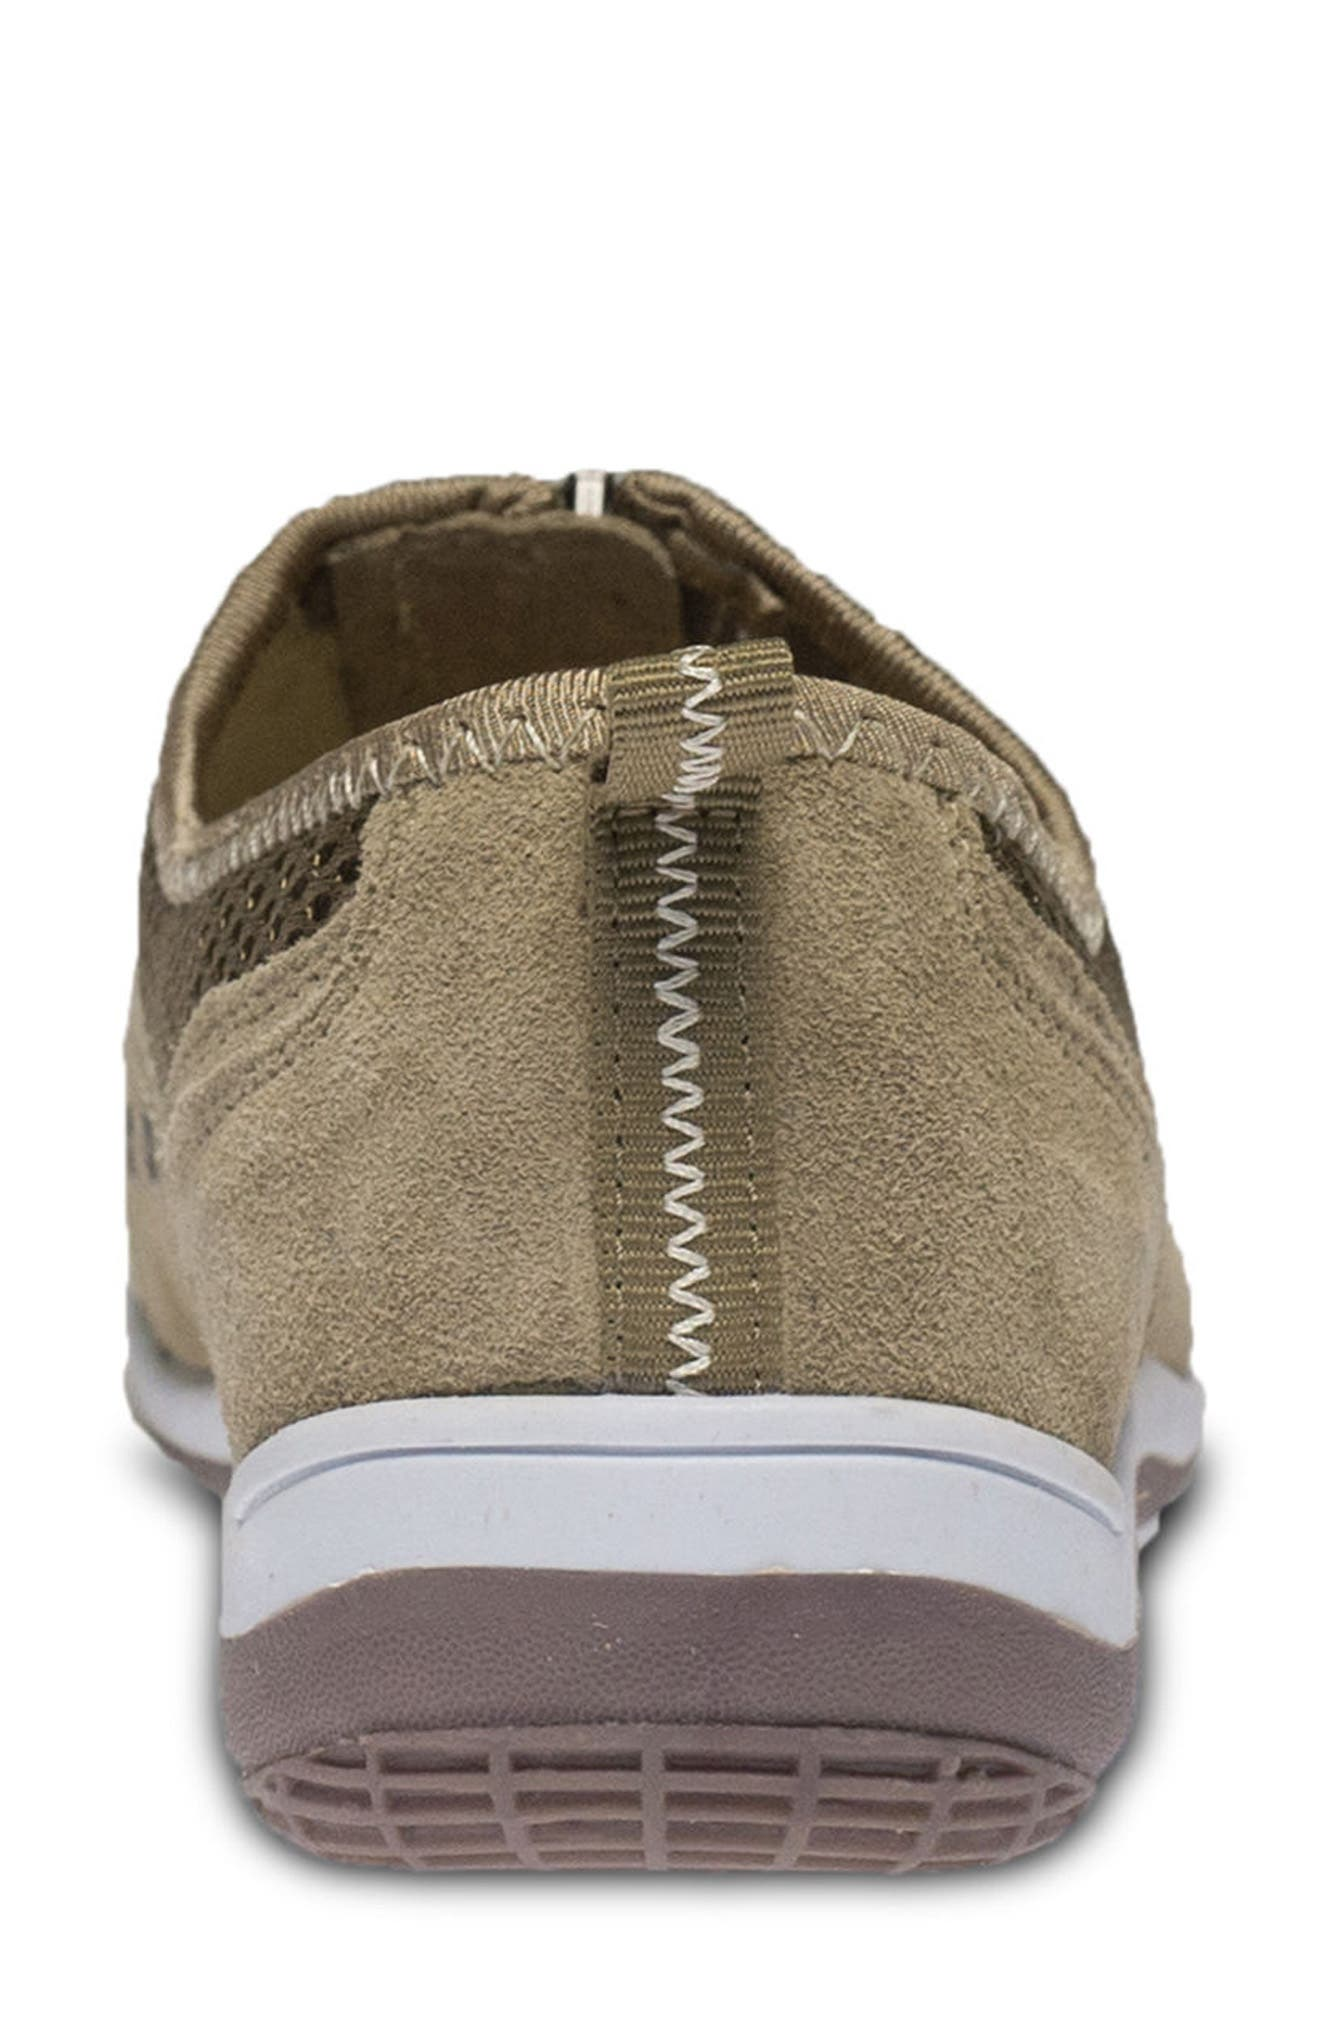 Racer Slip-On Sneaker,                             Alternate thumbnail 4, color,                             Taupe Suede